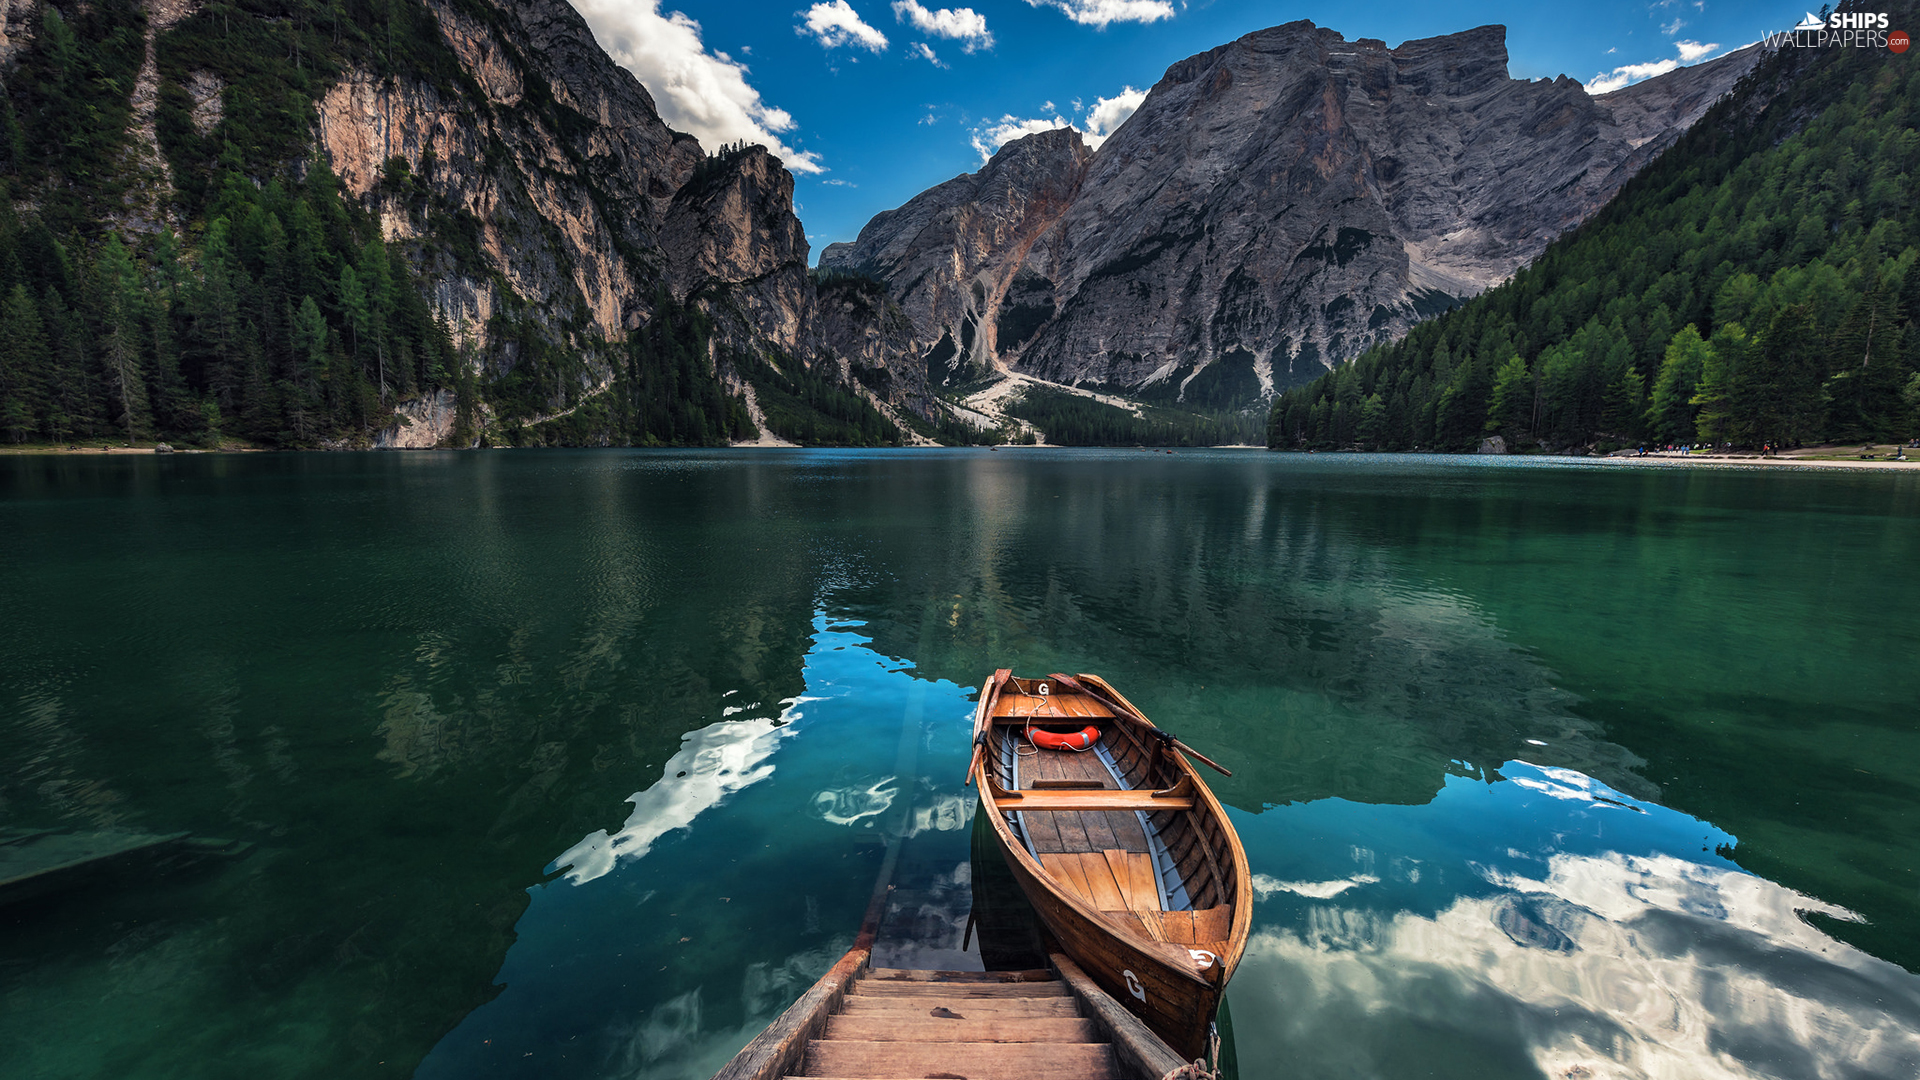 viewes, Dolomites, Pragser Wildsee Lake, wood, Mount Seekofel, Italy, South Tyrol, Stairs, Boat, trees